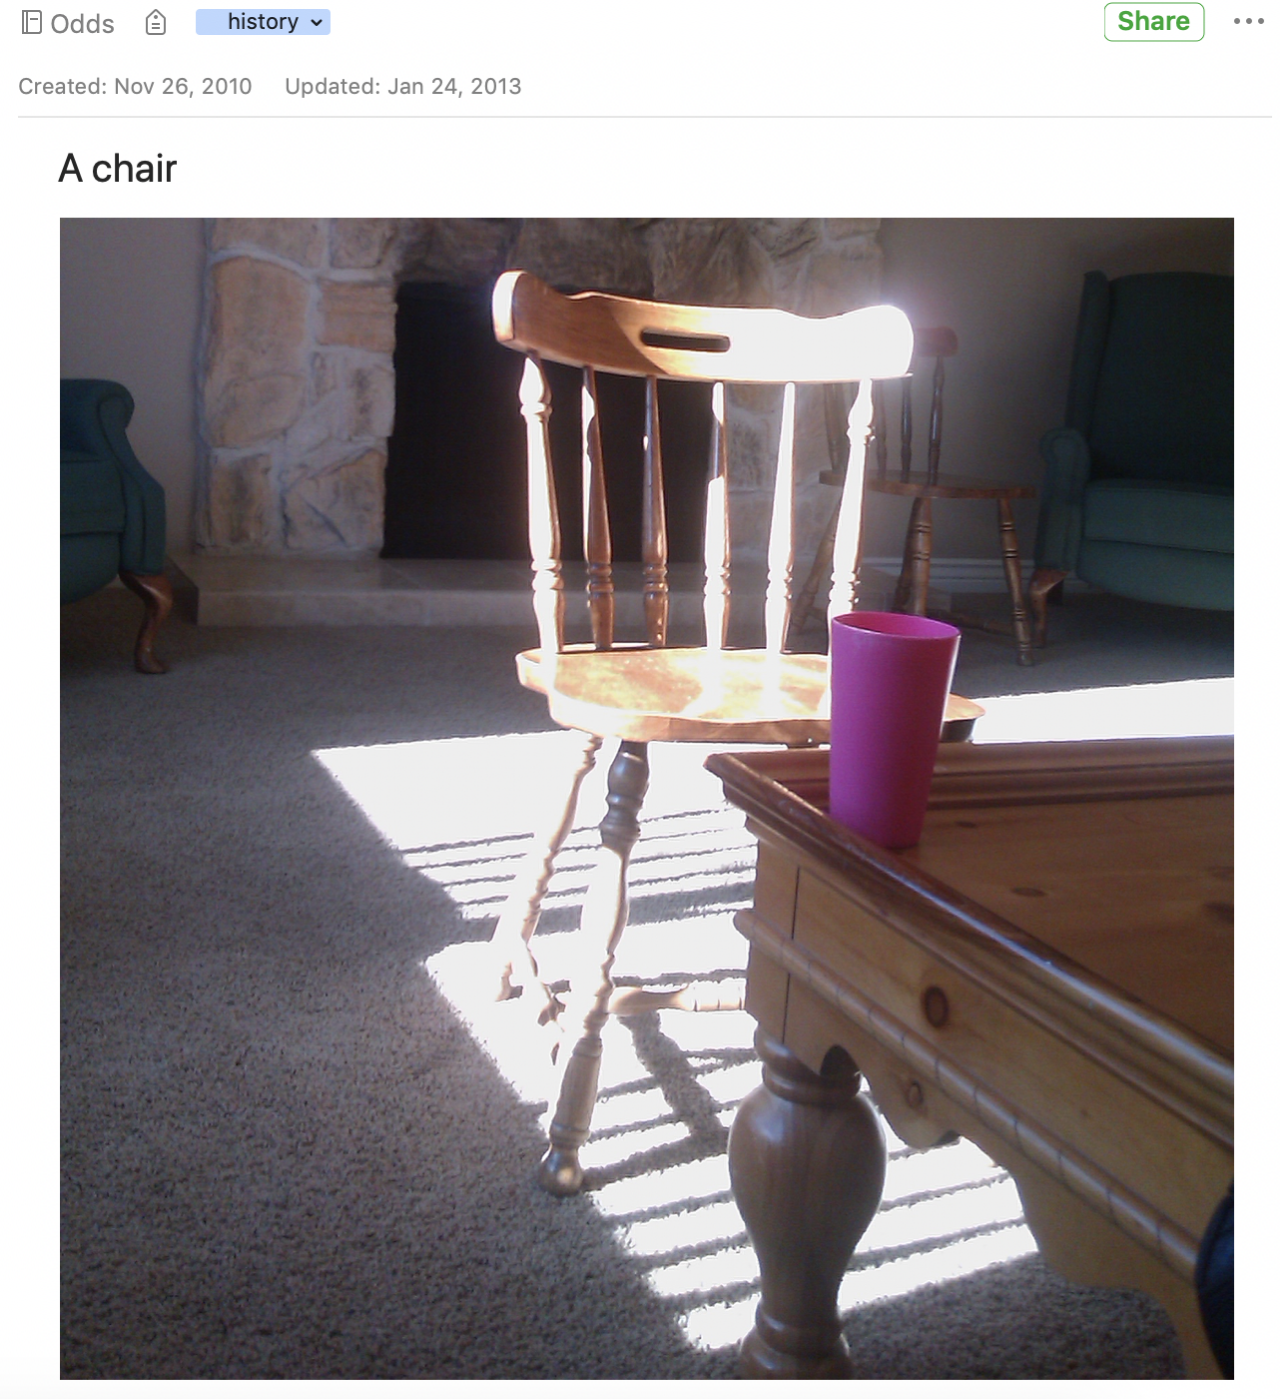 A very plain photo of a chair in some sunlight.